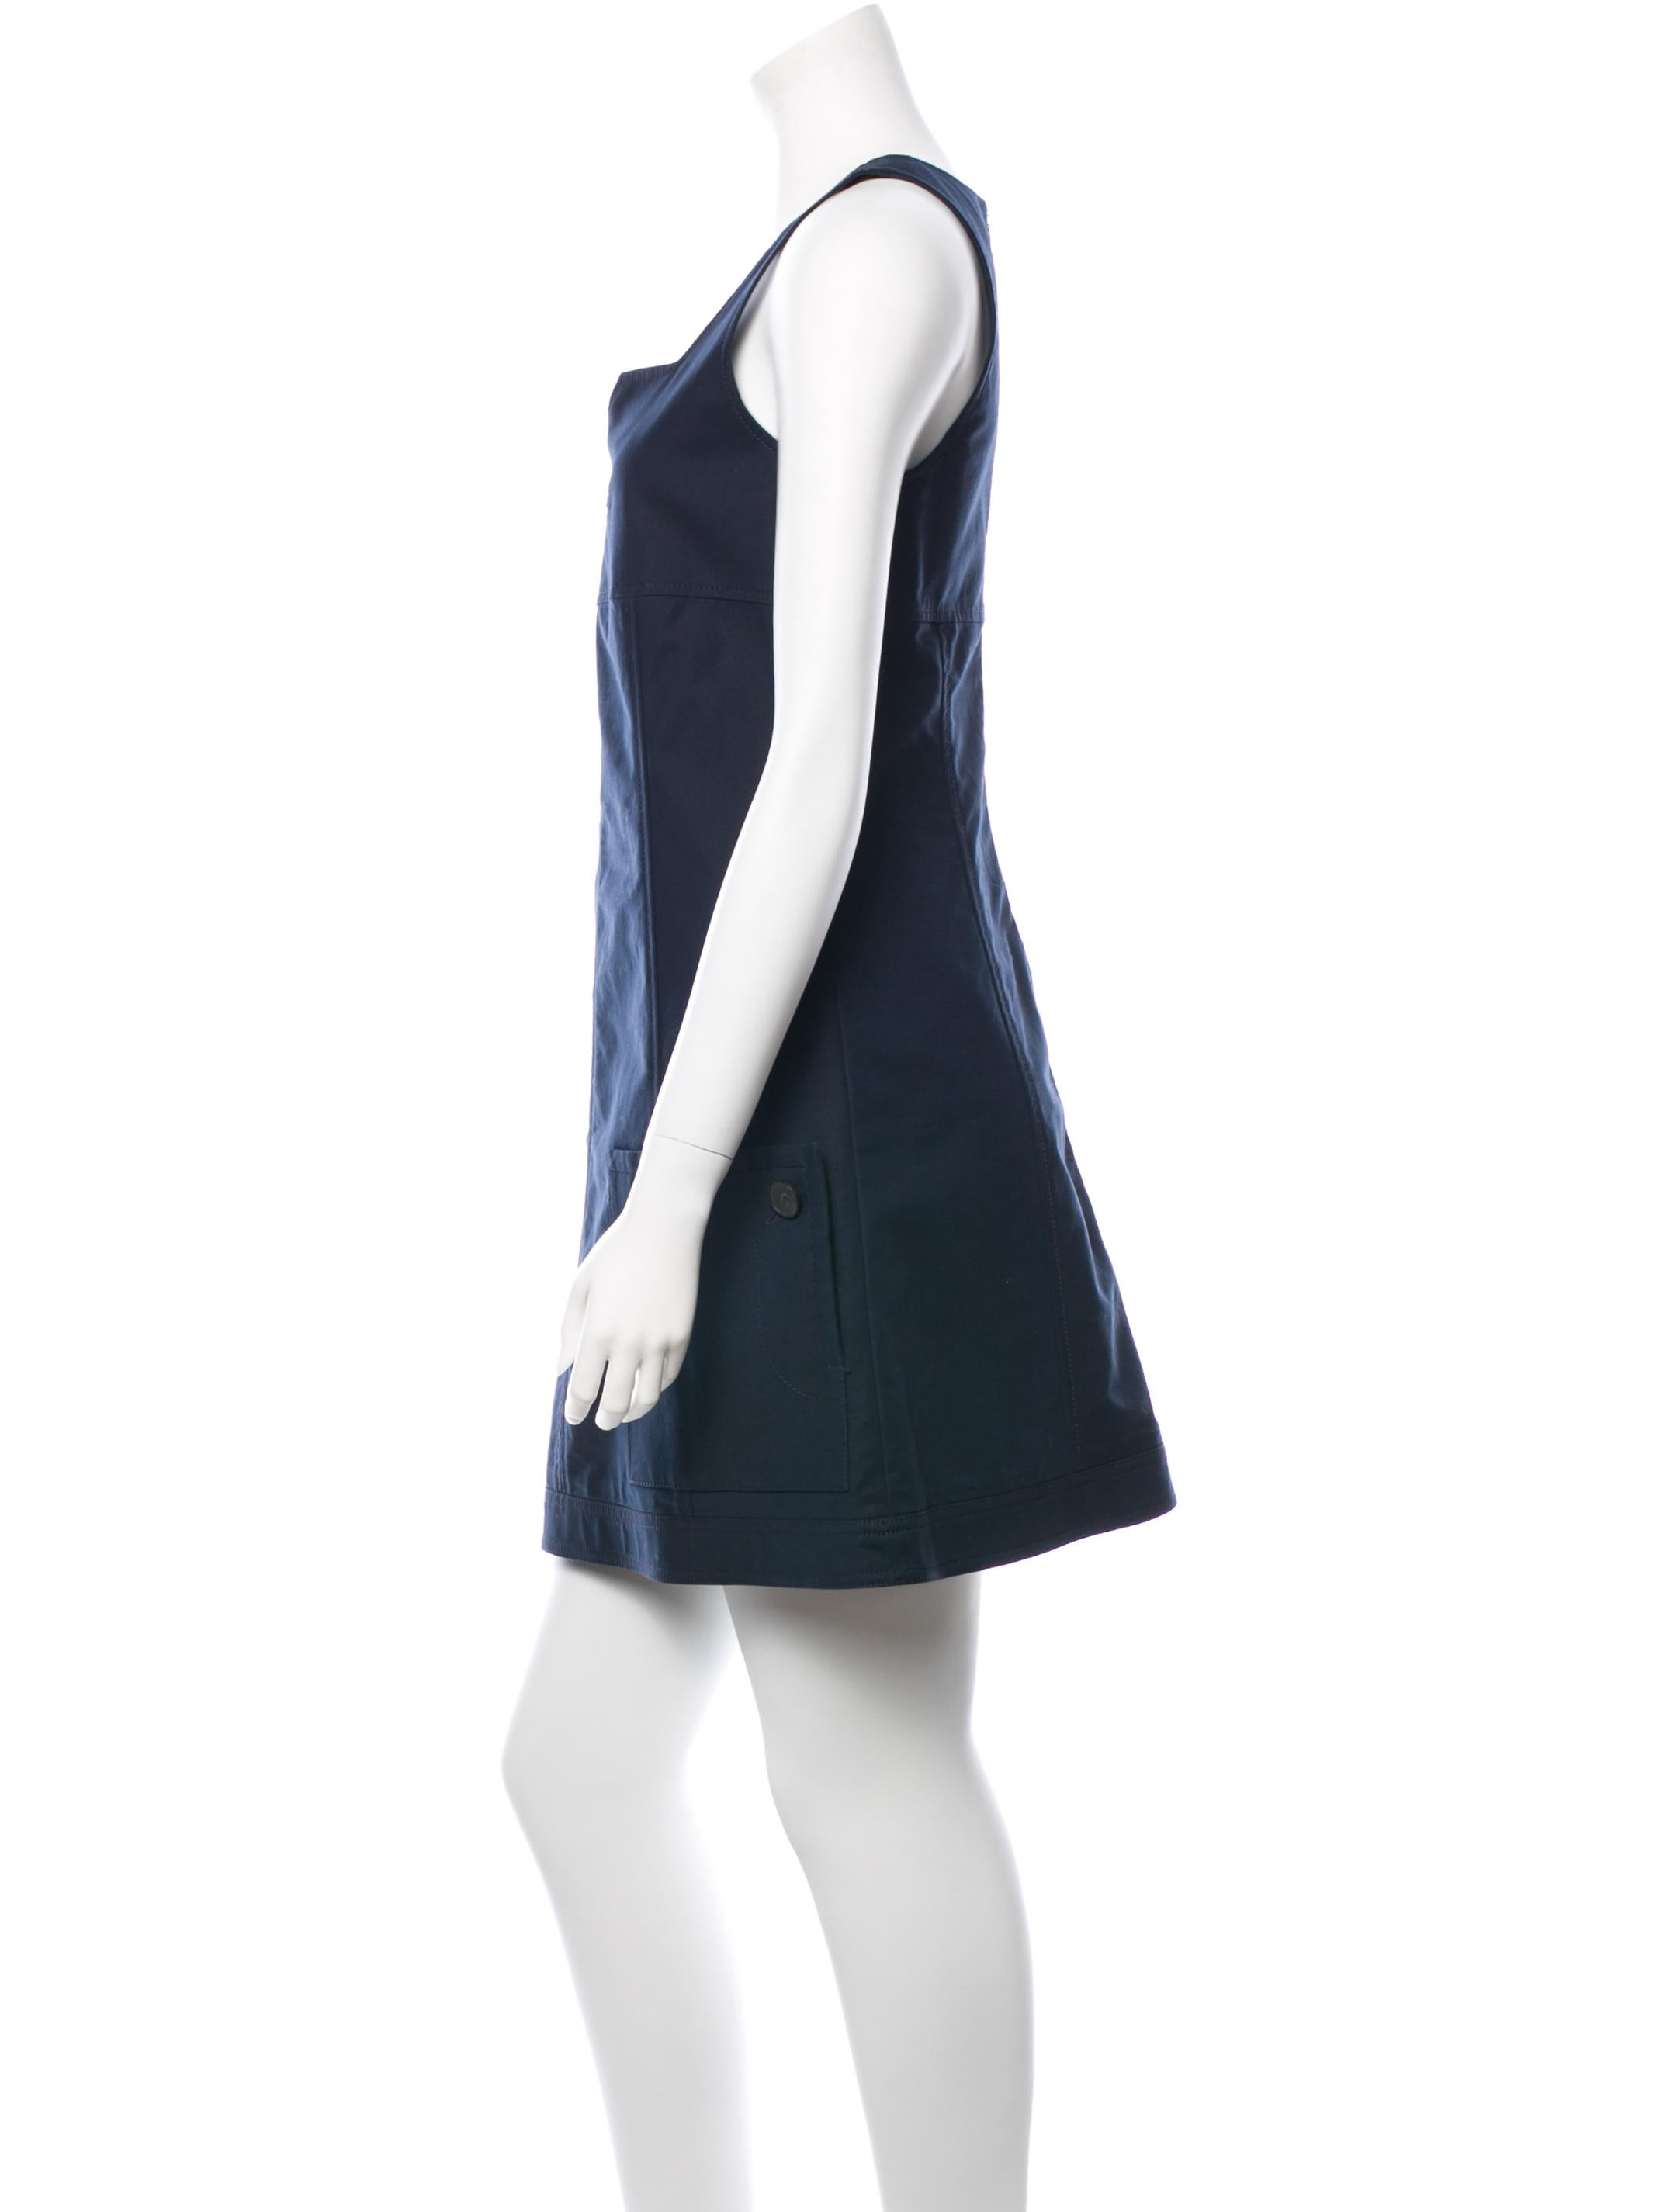 10 crosby derek lam dress clothing wdl21619 the realreal for Derek lam 10 crosby shirt dress